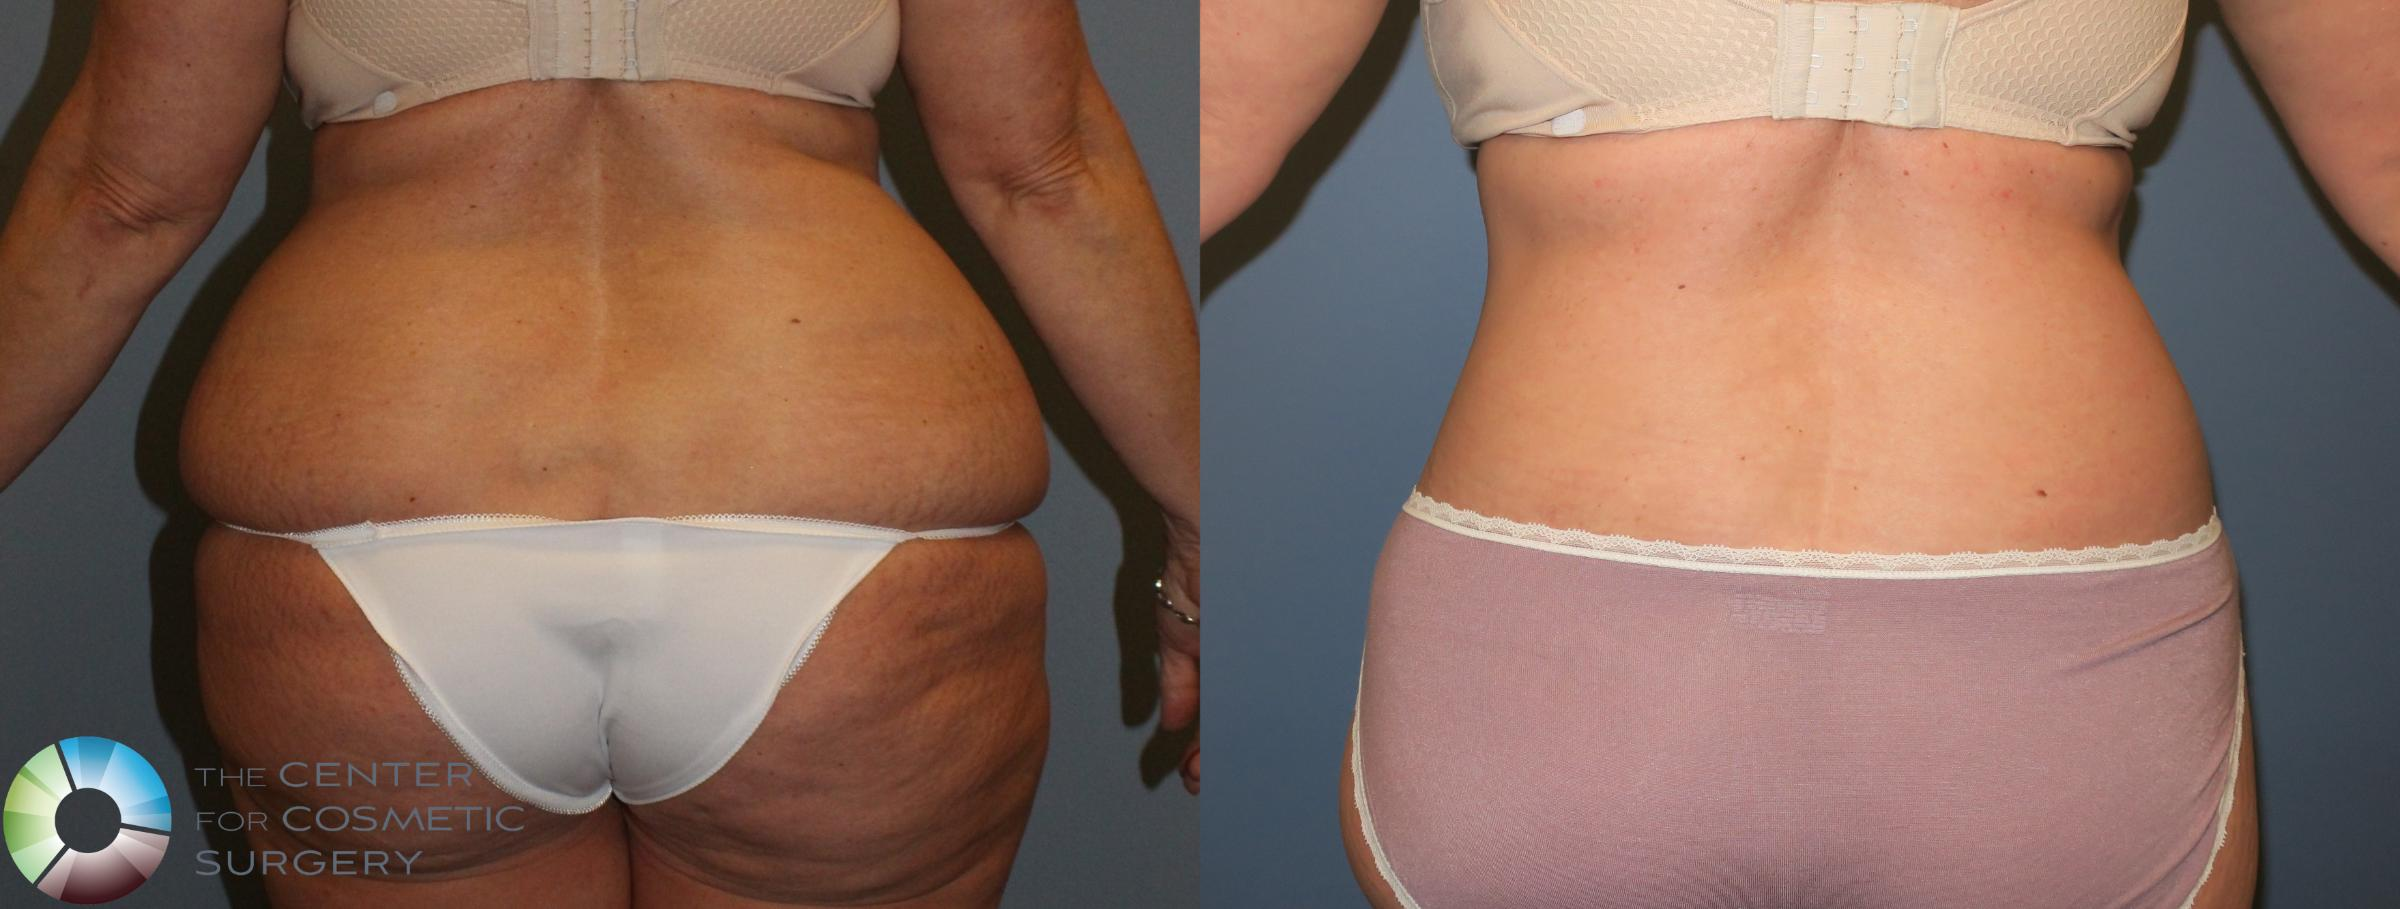 Body Lift Case 765 Before & After View #2 | Golden, CO | The Center for Cosmetic Surgery